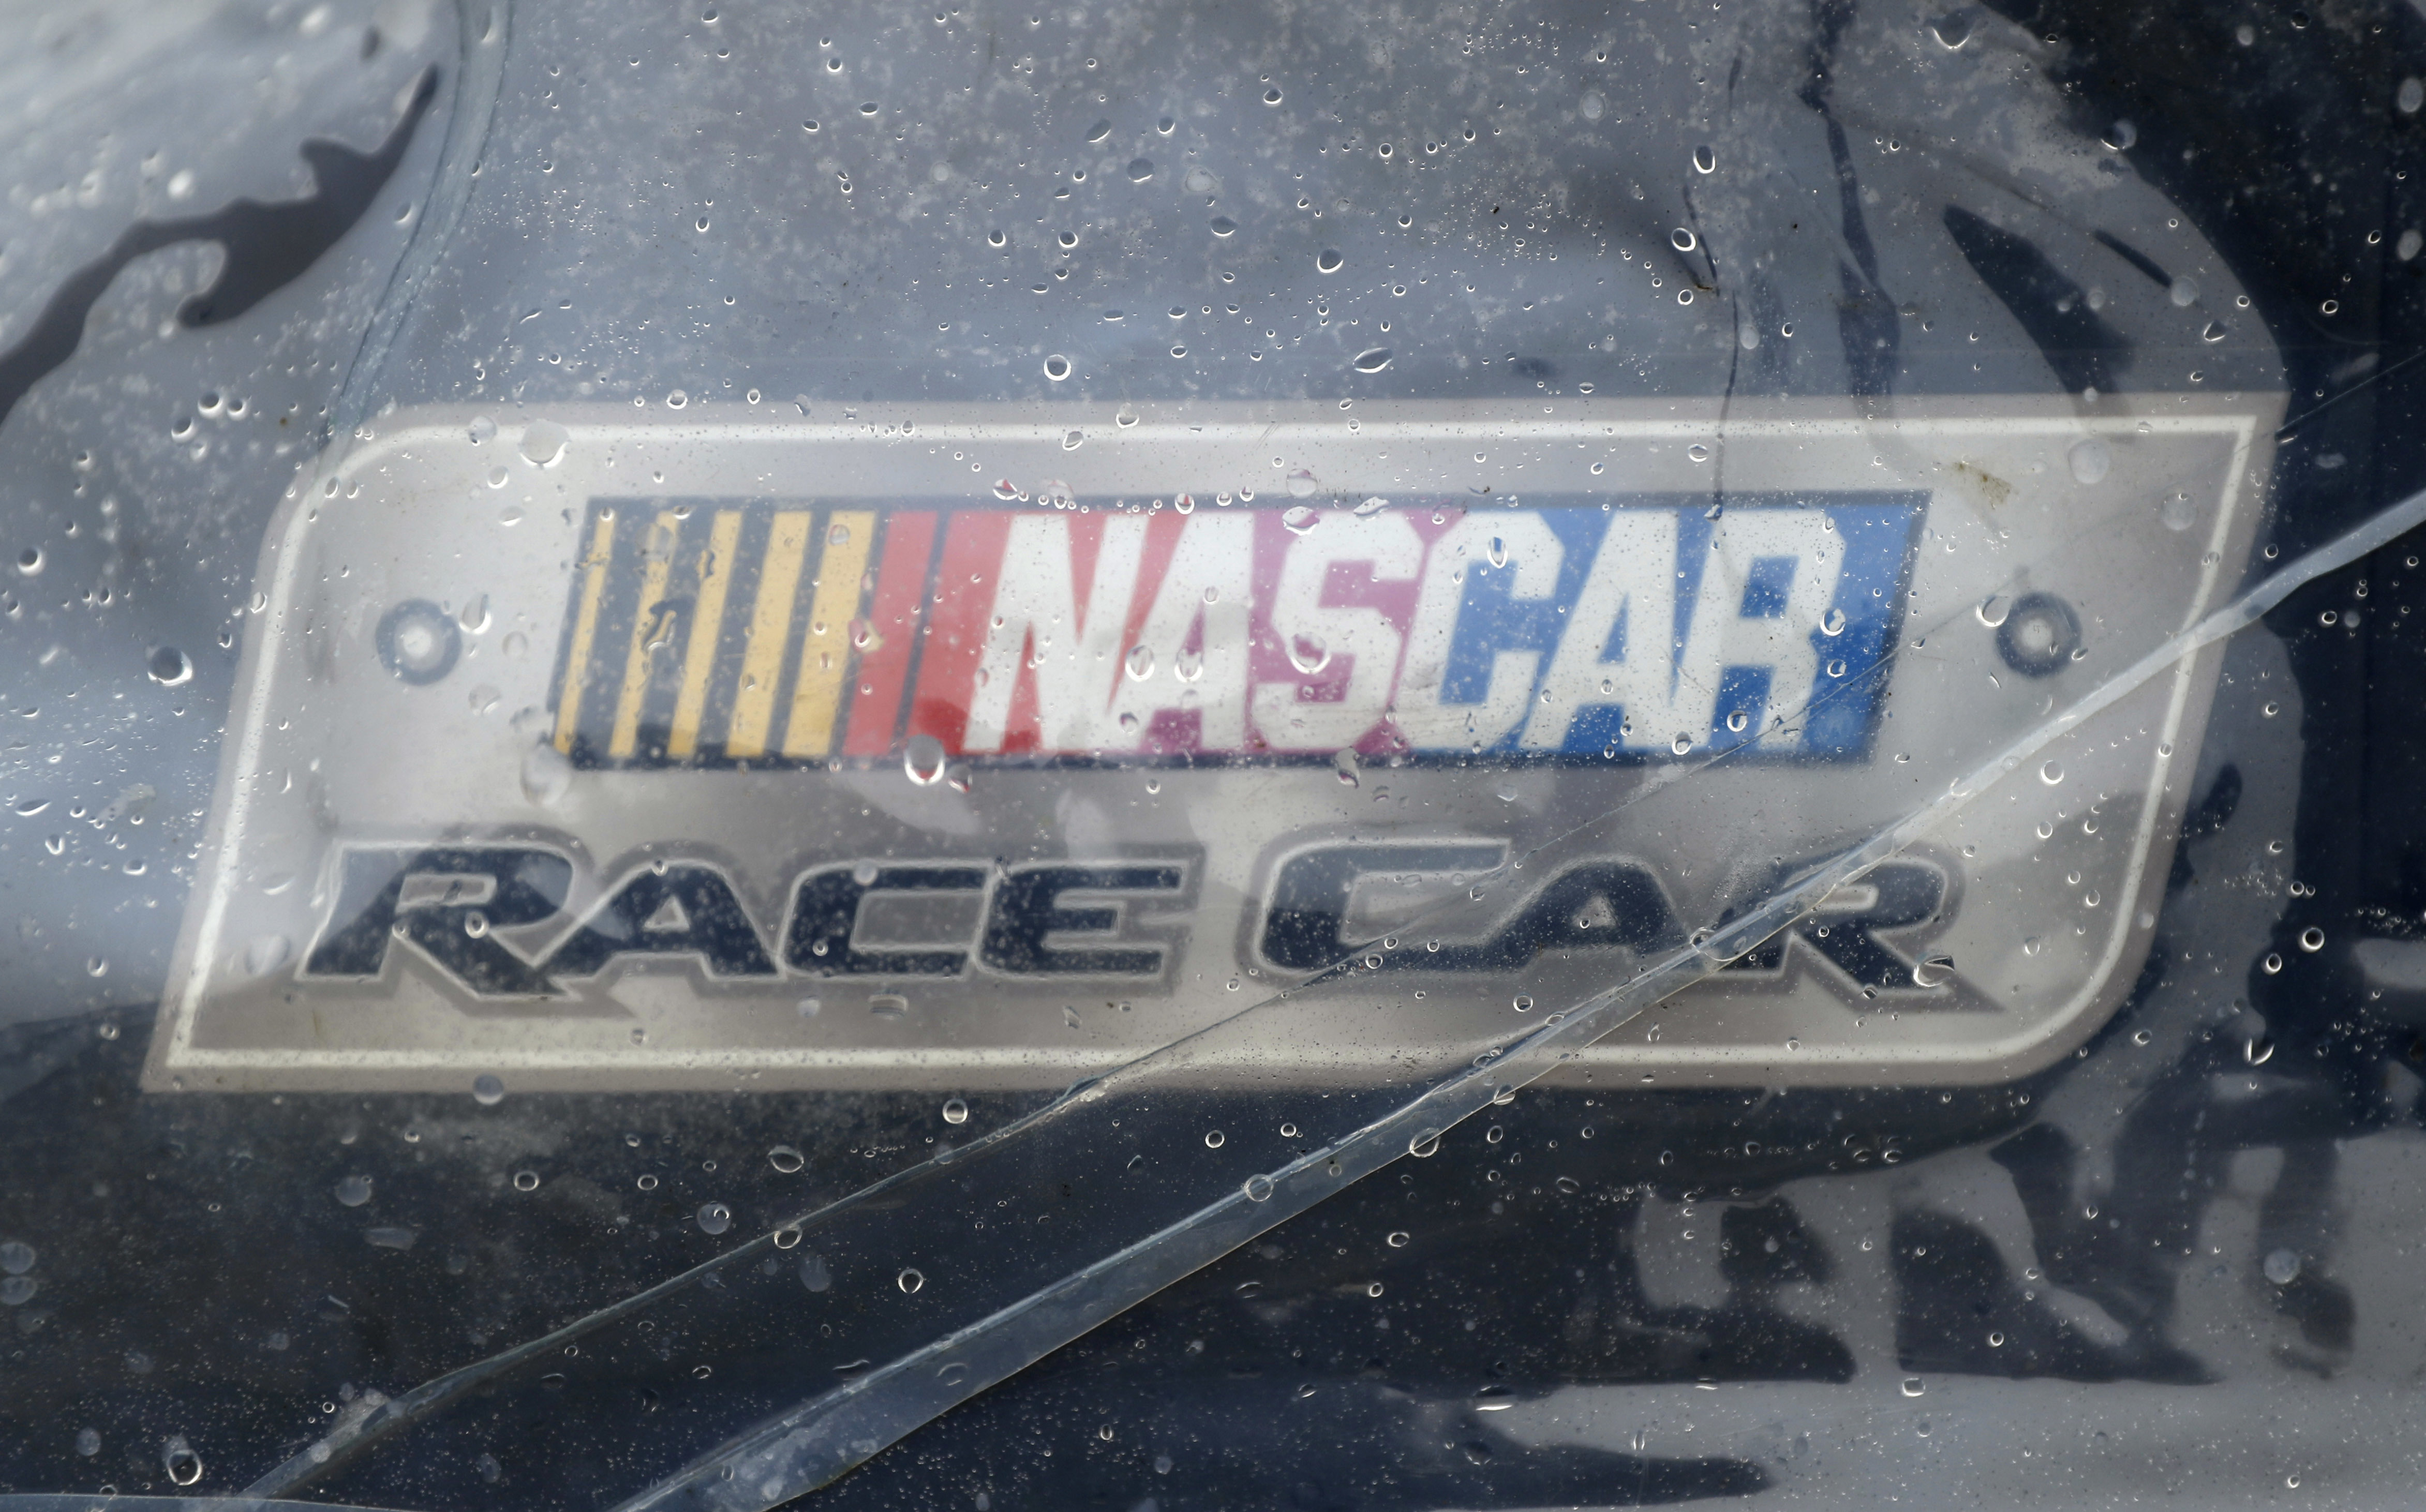 Rain drops are seen on a tarp over the car of Regan Smith before the NASCAR Sprint Cup series auto race, Sunday, June 5, 2016, in Long Pond, Pa. (AP Photo/Matt Slocum)